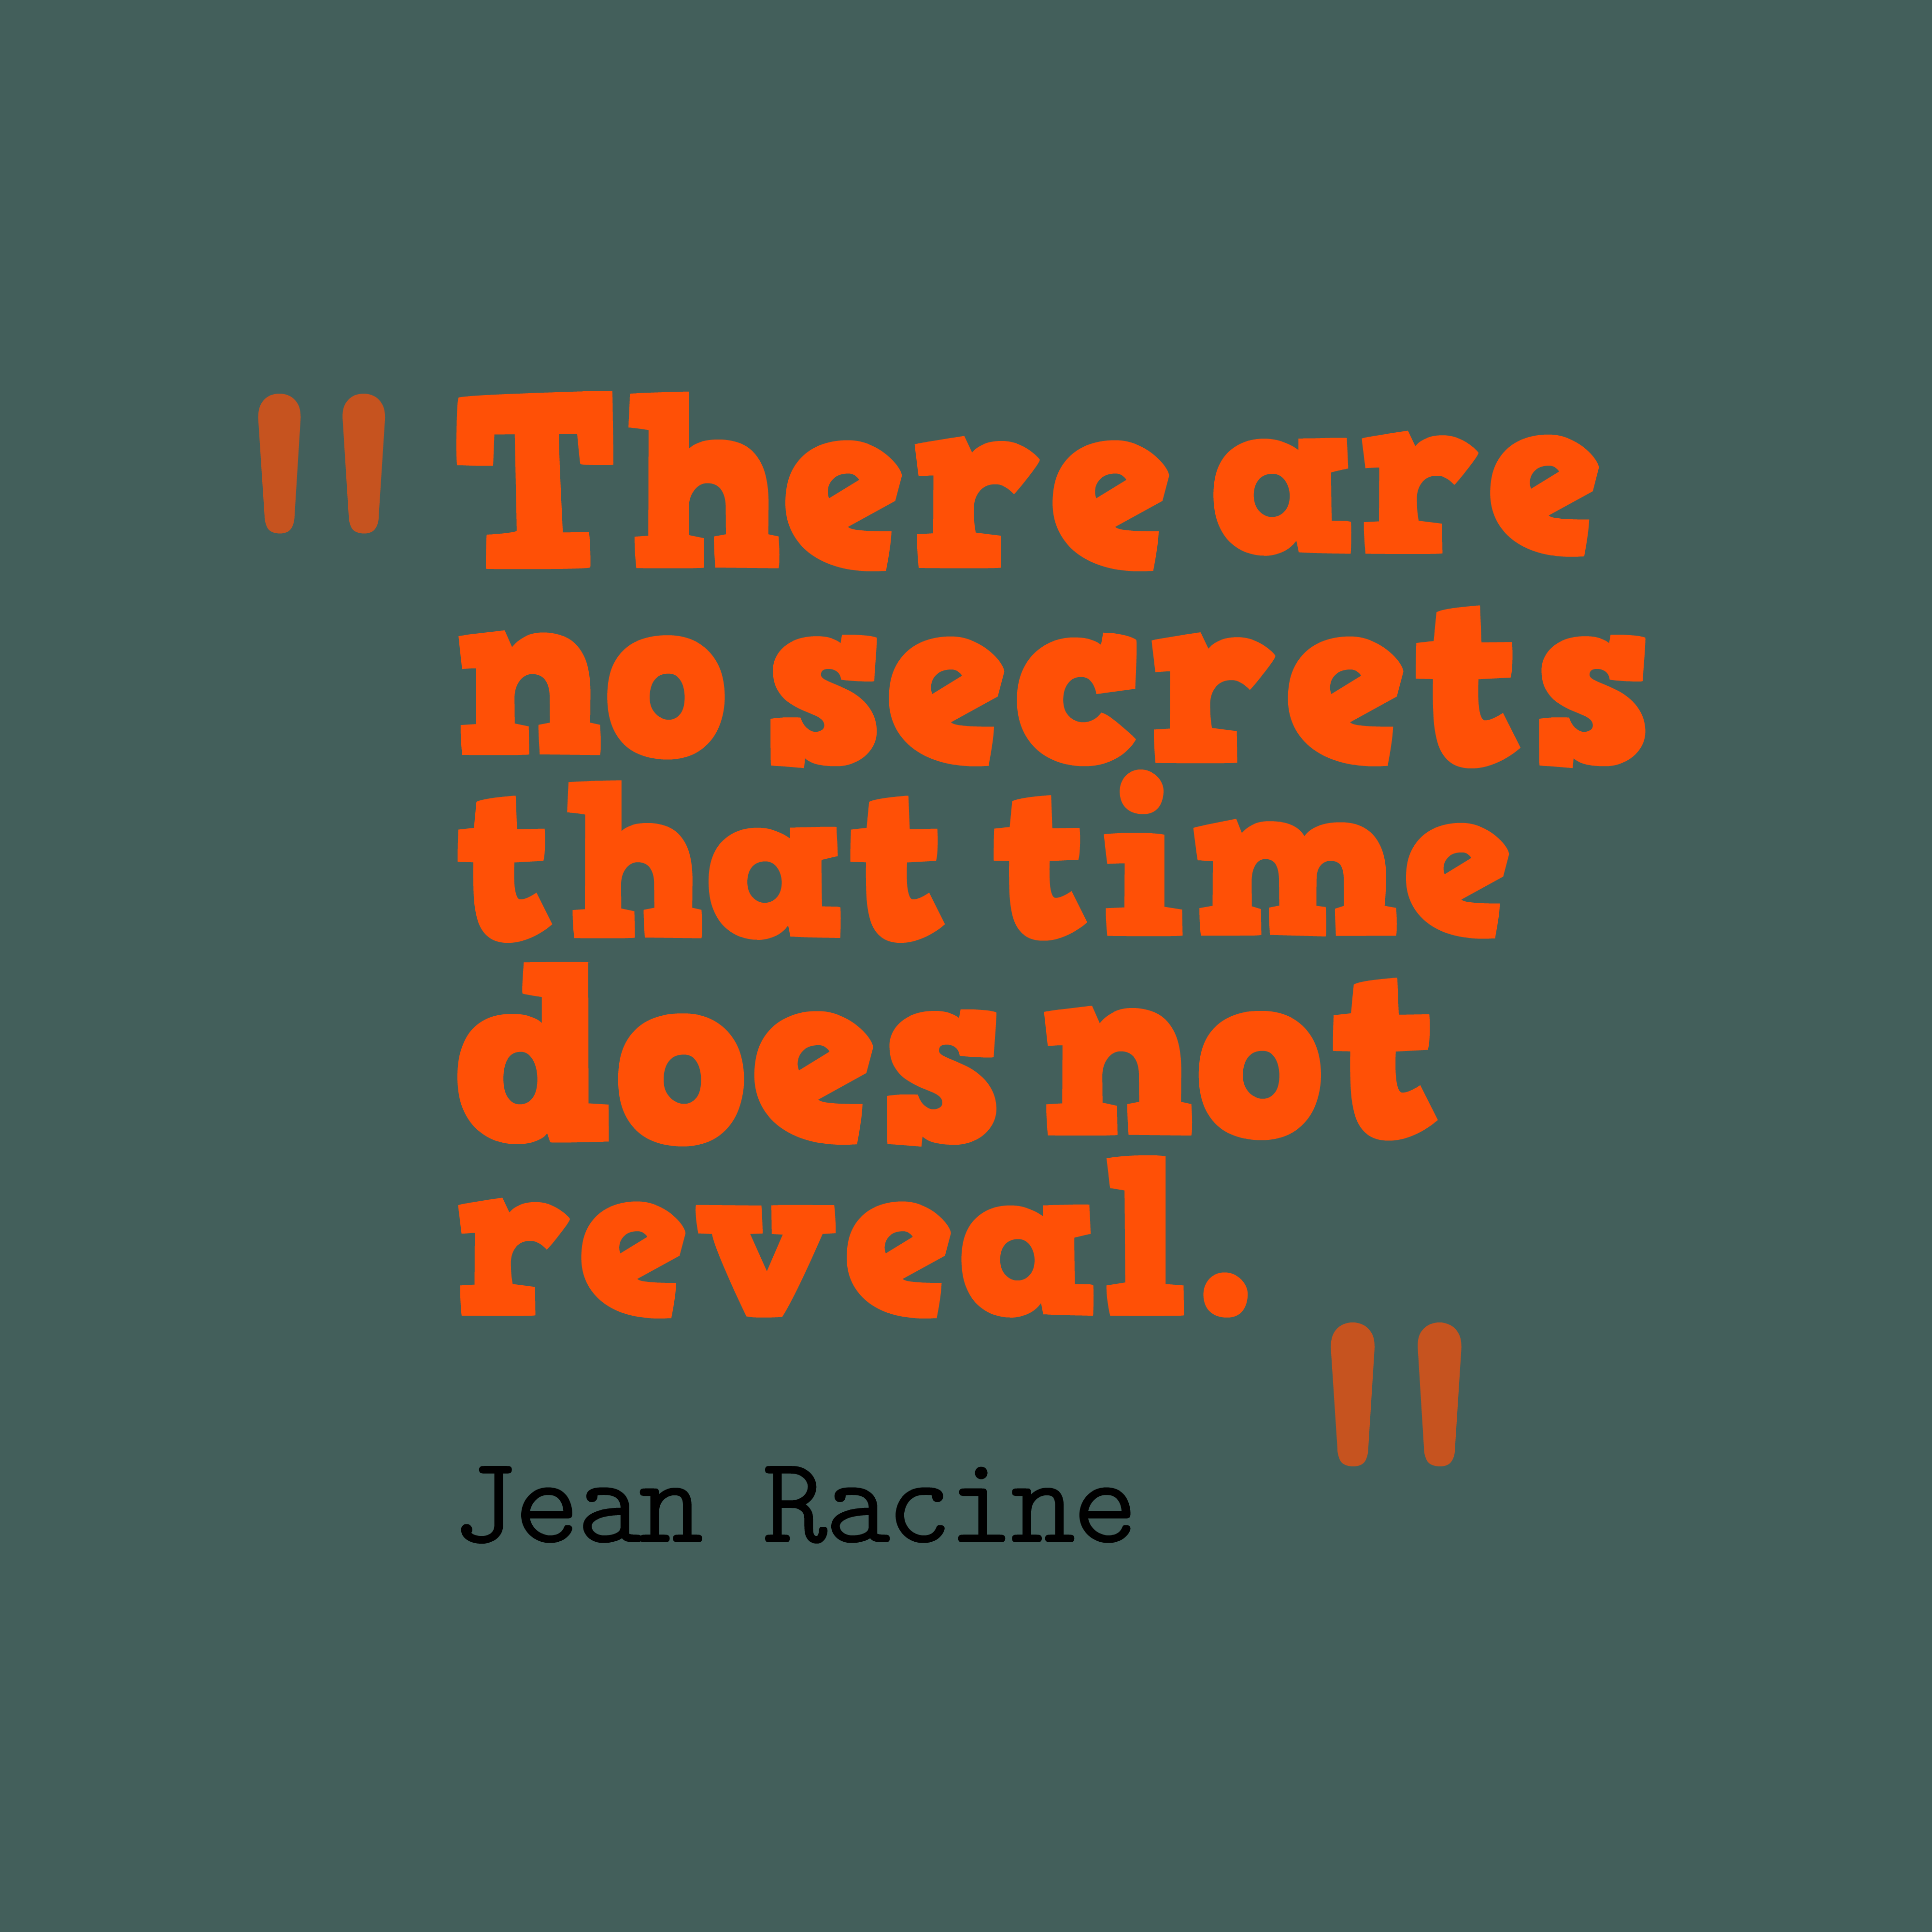 Jean Racine quote about time.